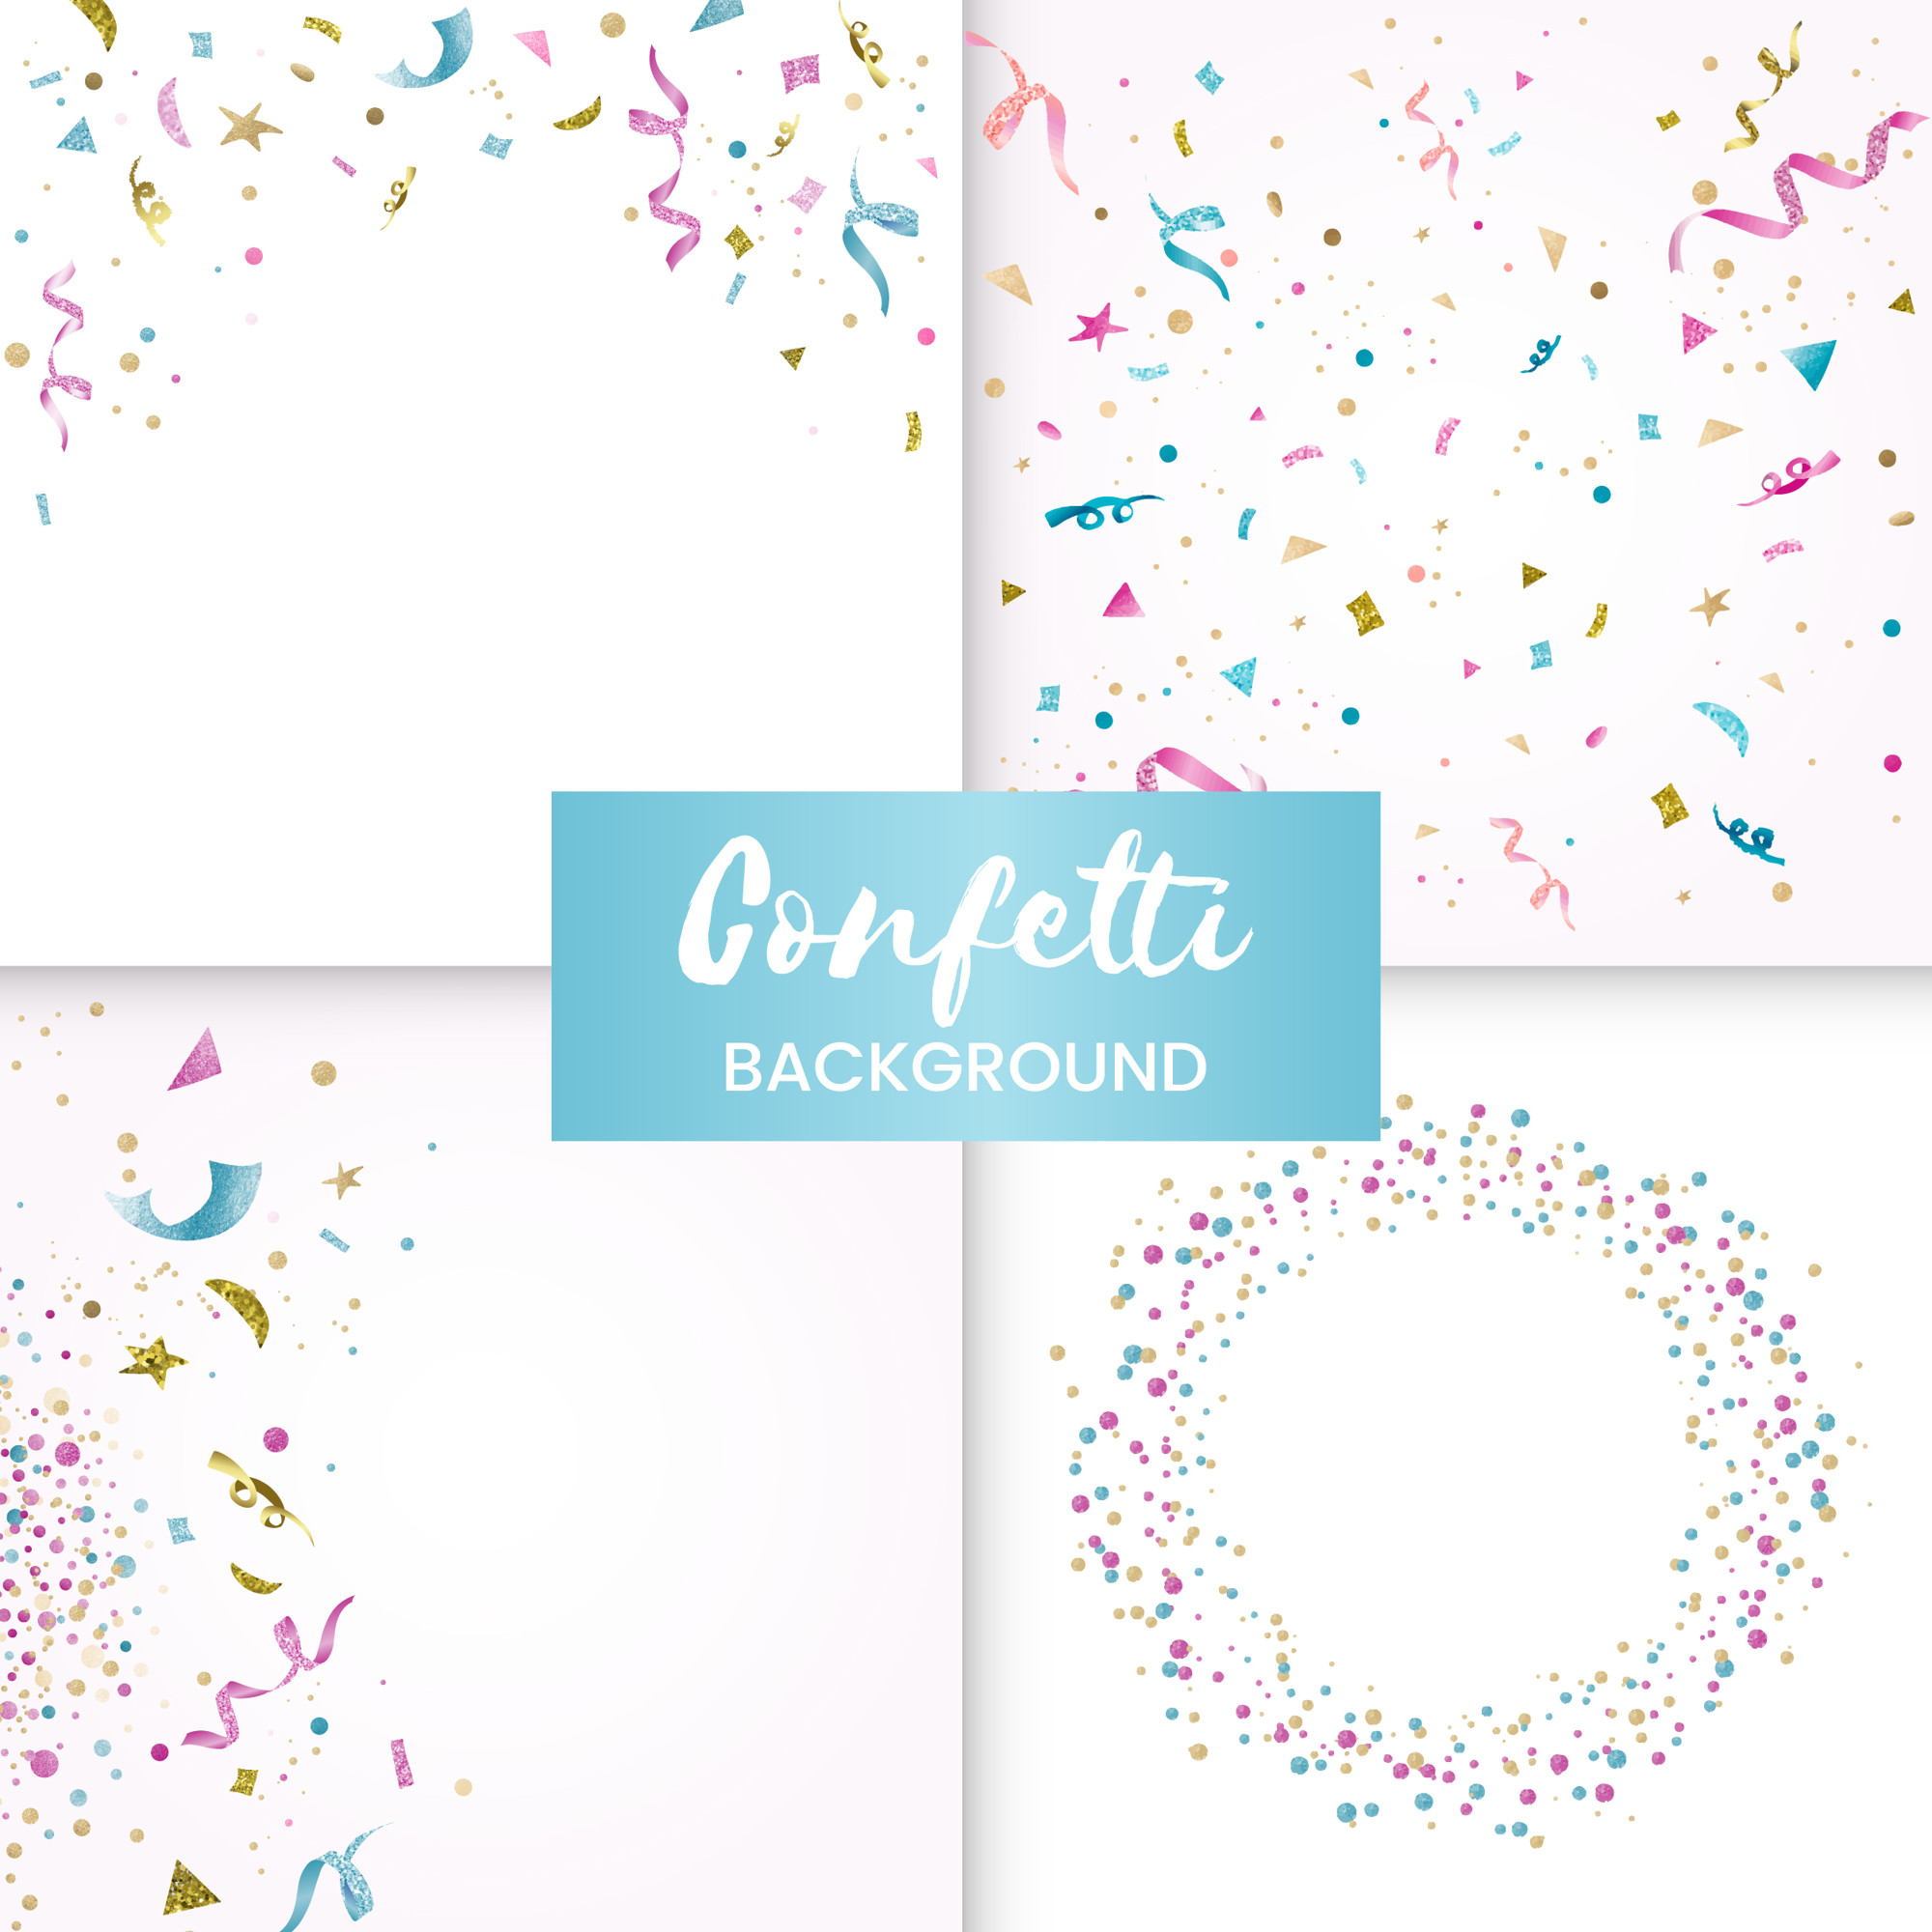 Colorful confettcelebratory design collection